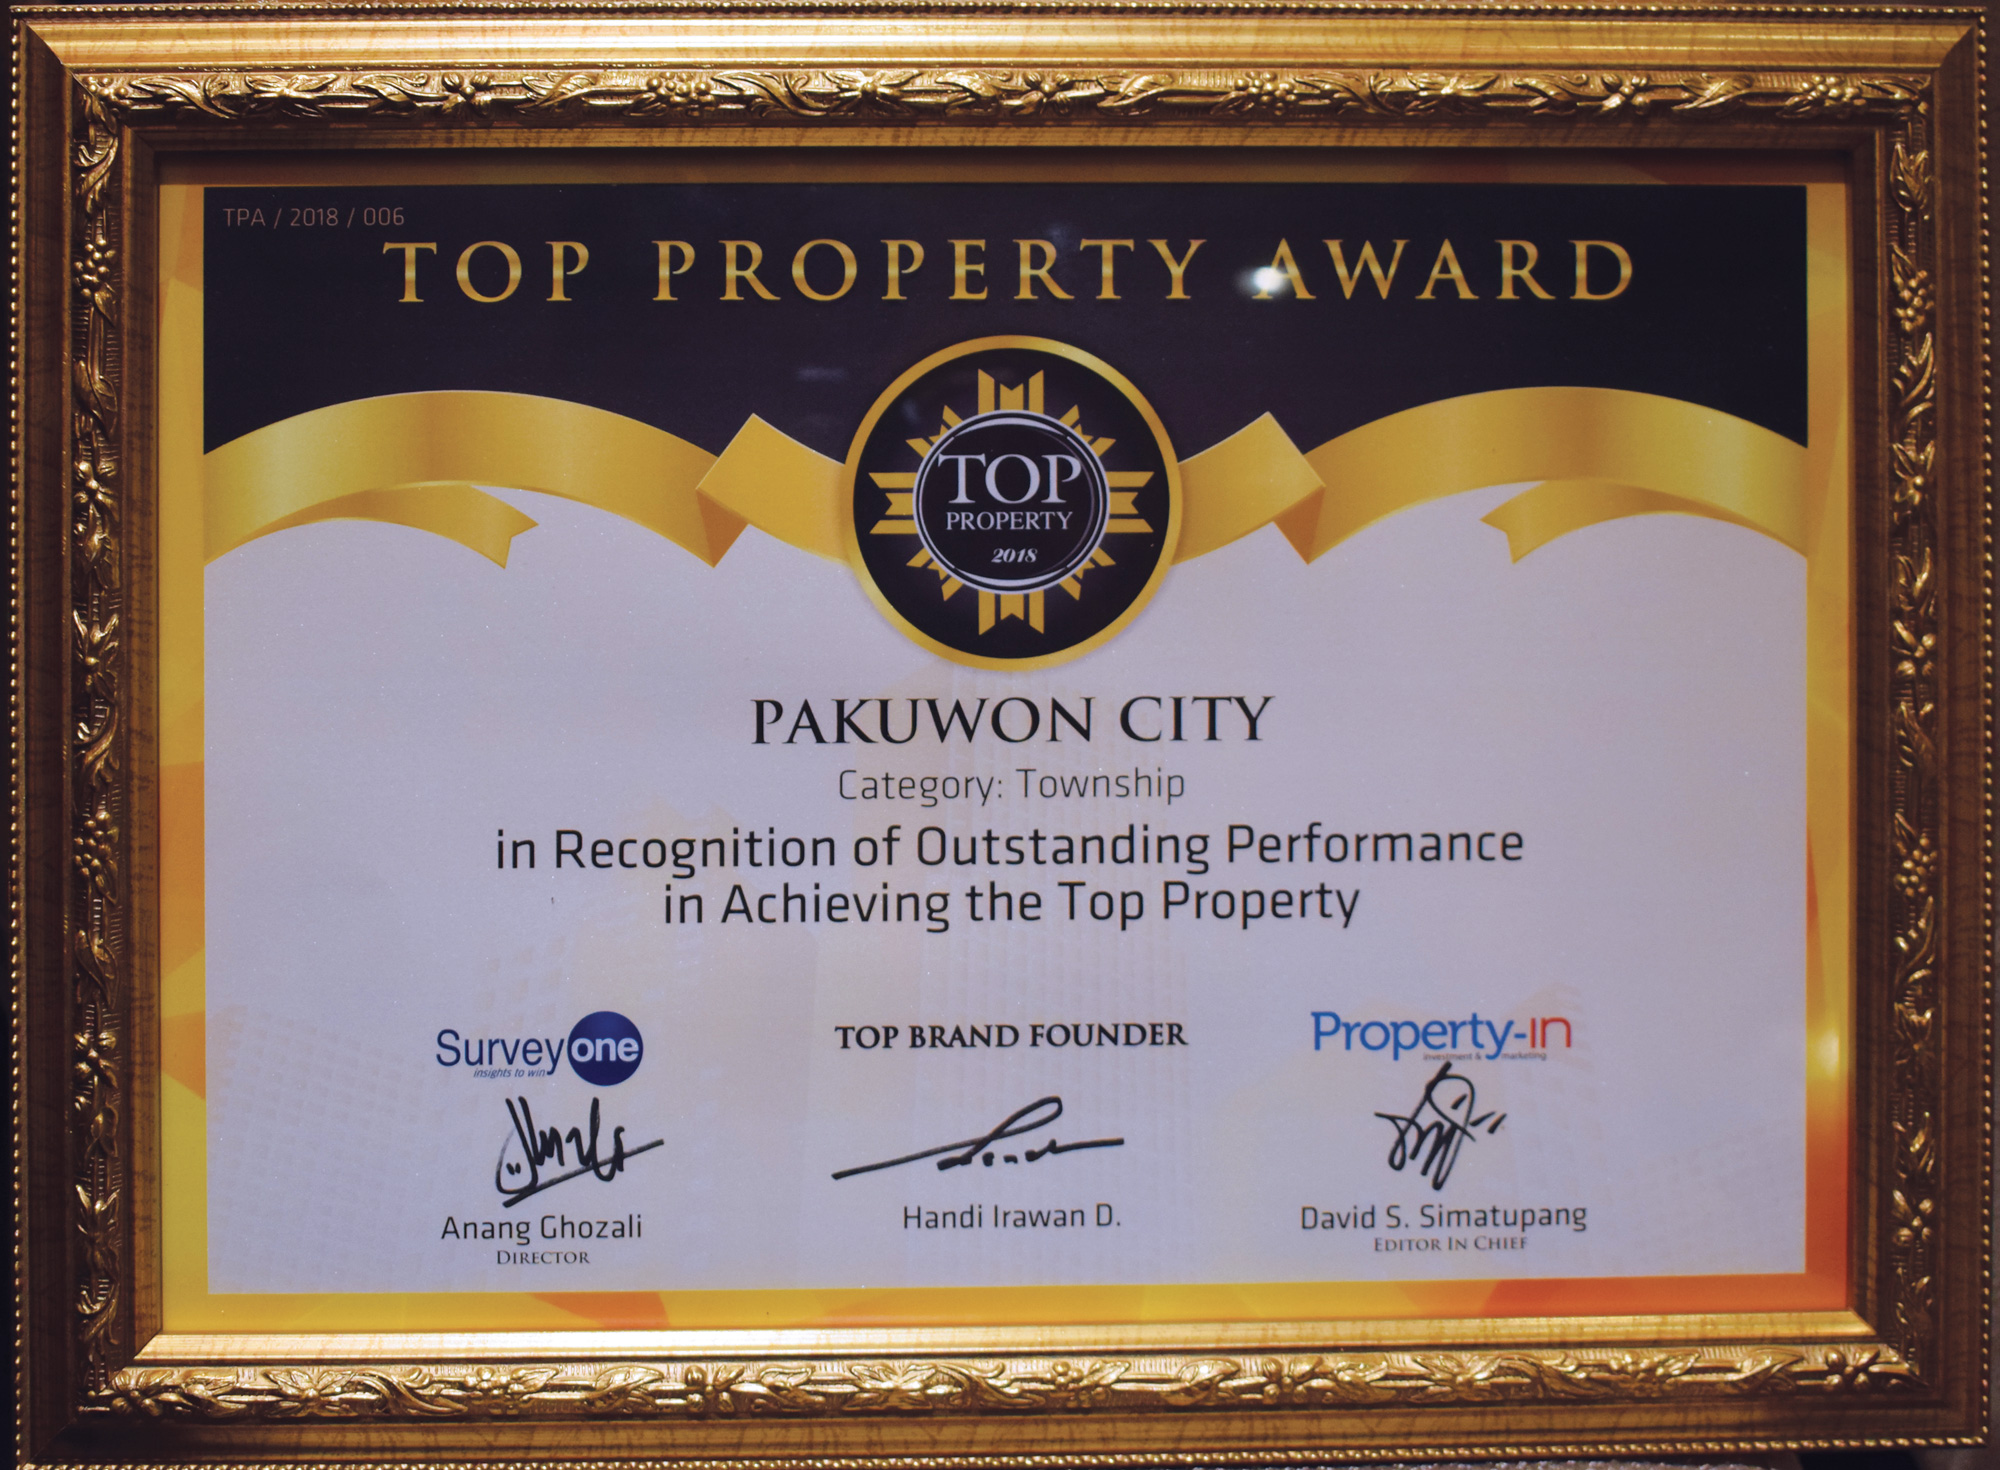 /public/files/image-companny/award-slider/10.TopPropertyAward-PAKUWONCITY-InRecognitionofOutstandingPerformanceinAchievingtheTopProperty-May2018.jpg